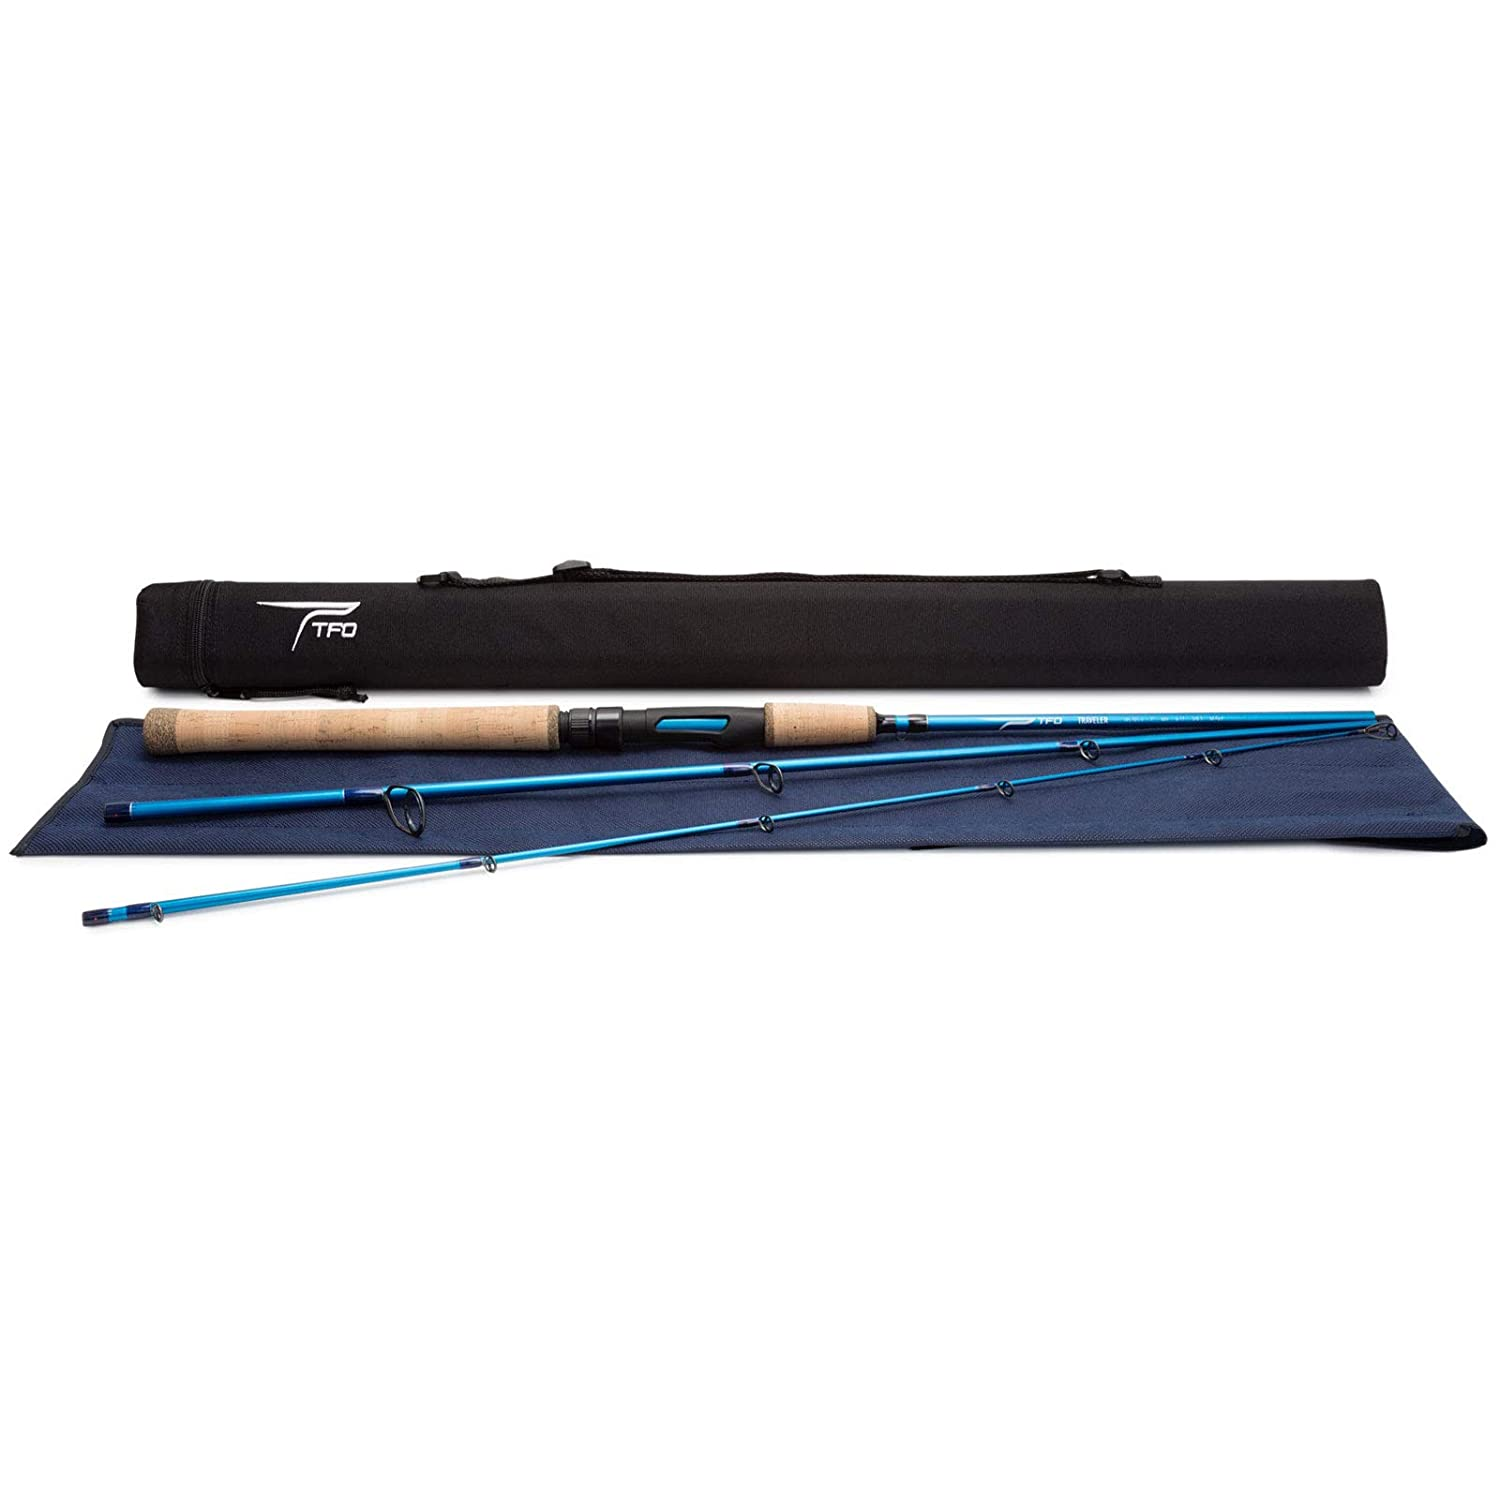 TFO Traveler Spinning Rod with Case